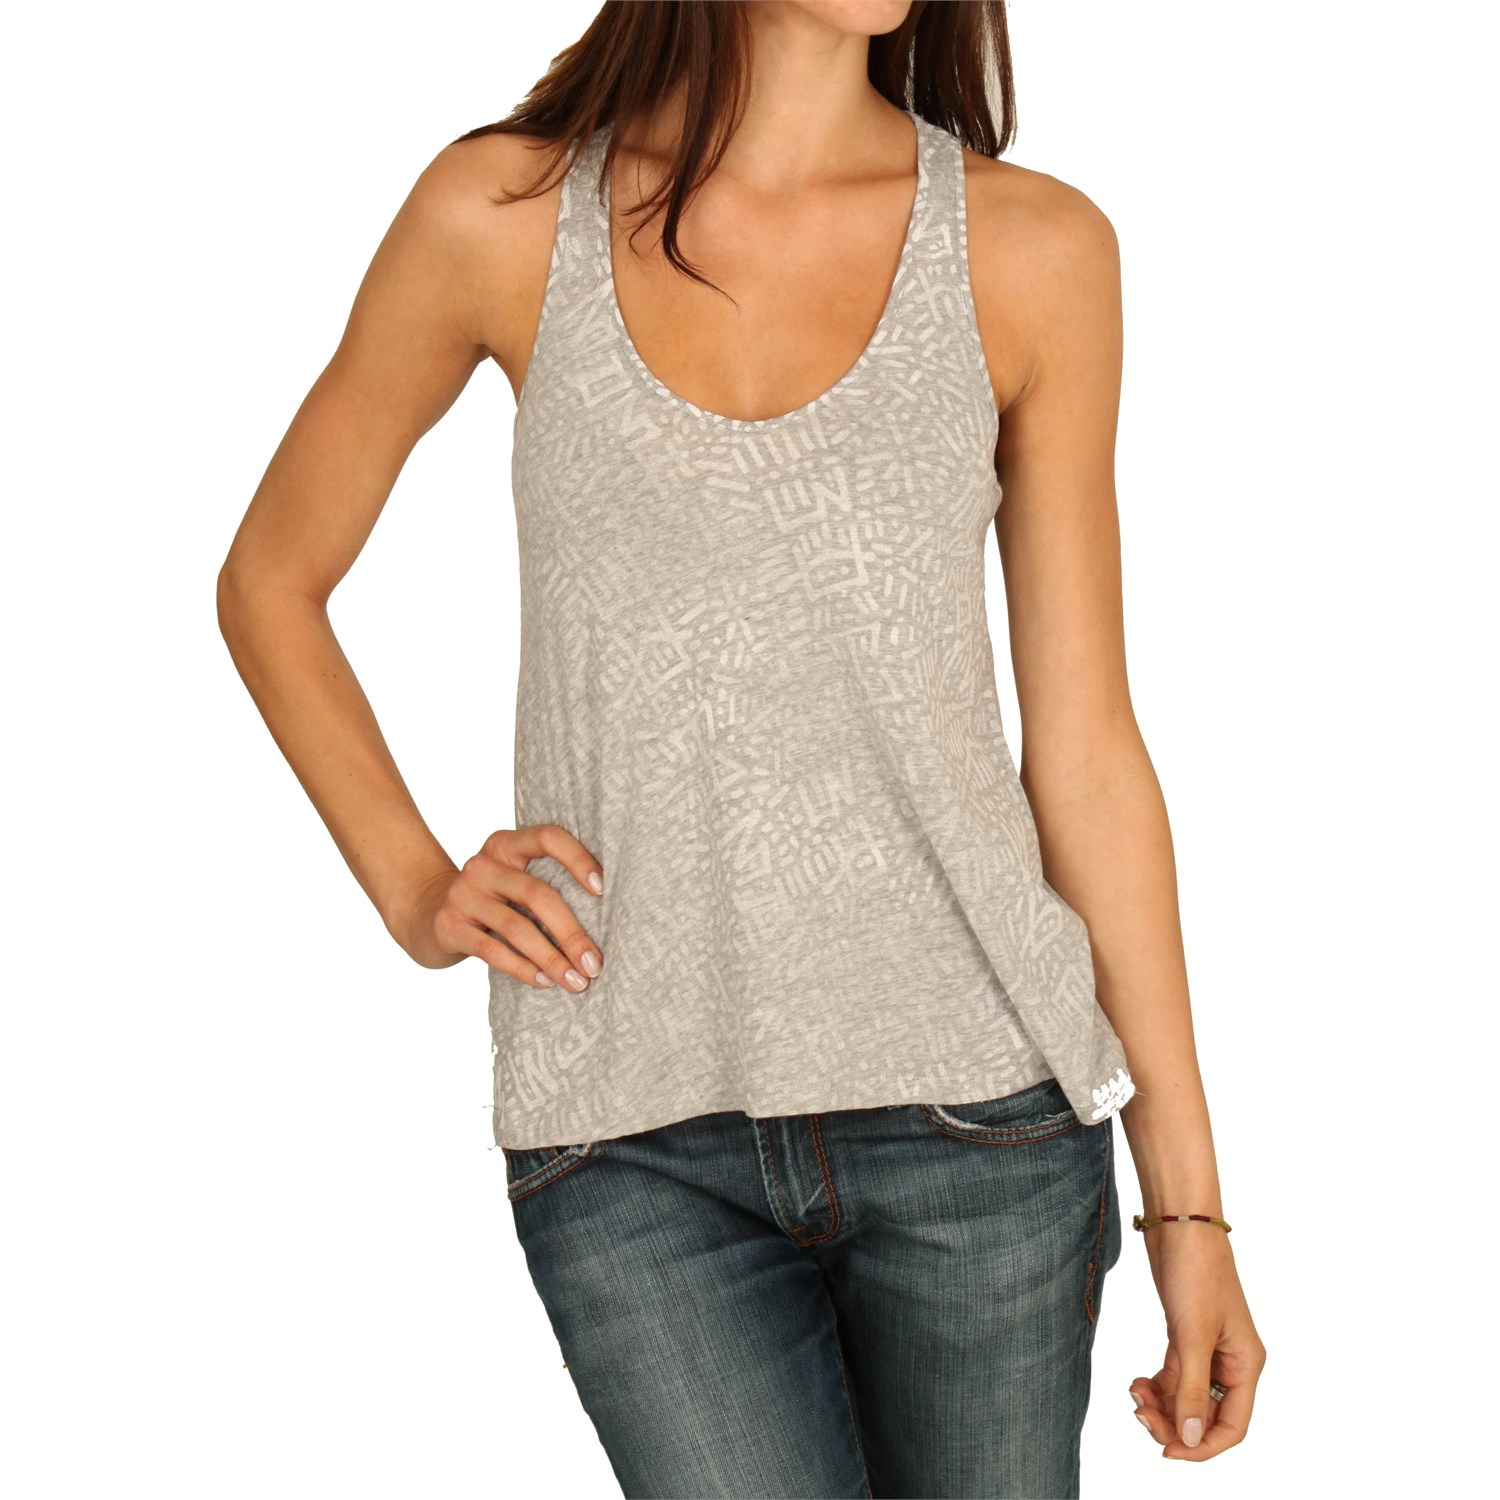 Tribal Tank Top Women's